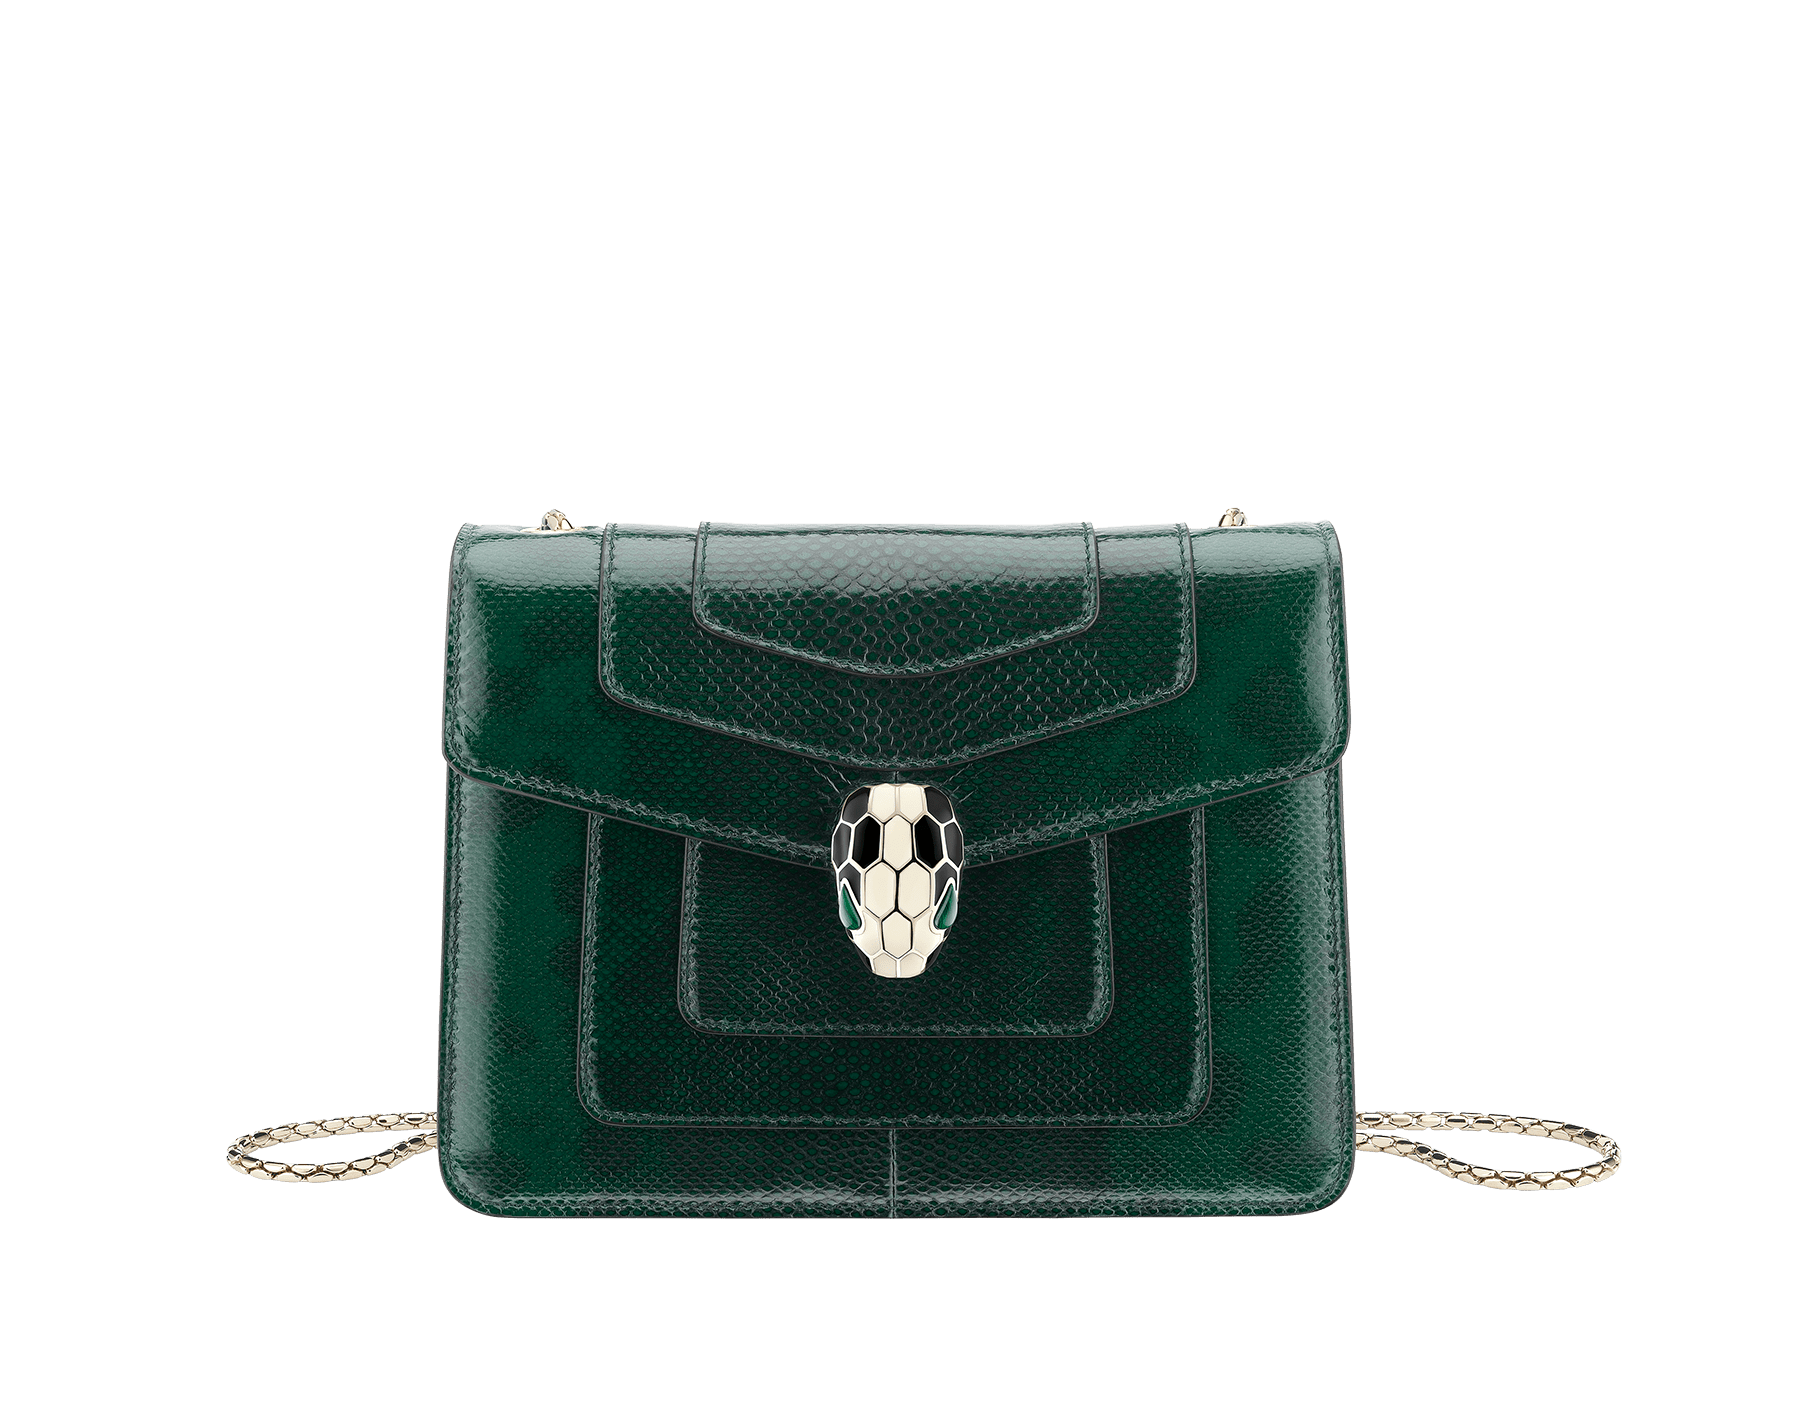 """Serpenti Forever"" crossbody bag in shiny forest emerald karung skin. Iconic snakehead closure in light gold plated brass enriched with black and white enamel and green malachite eyes. 287357 image 1"